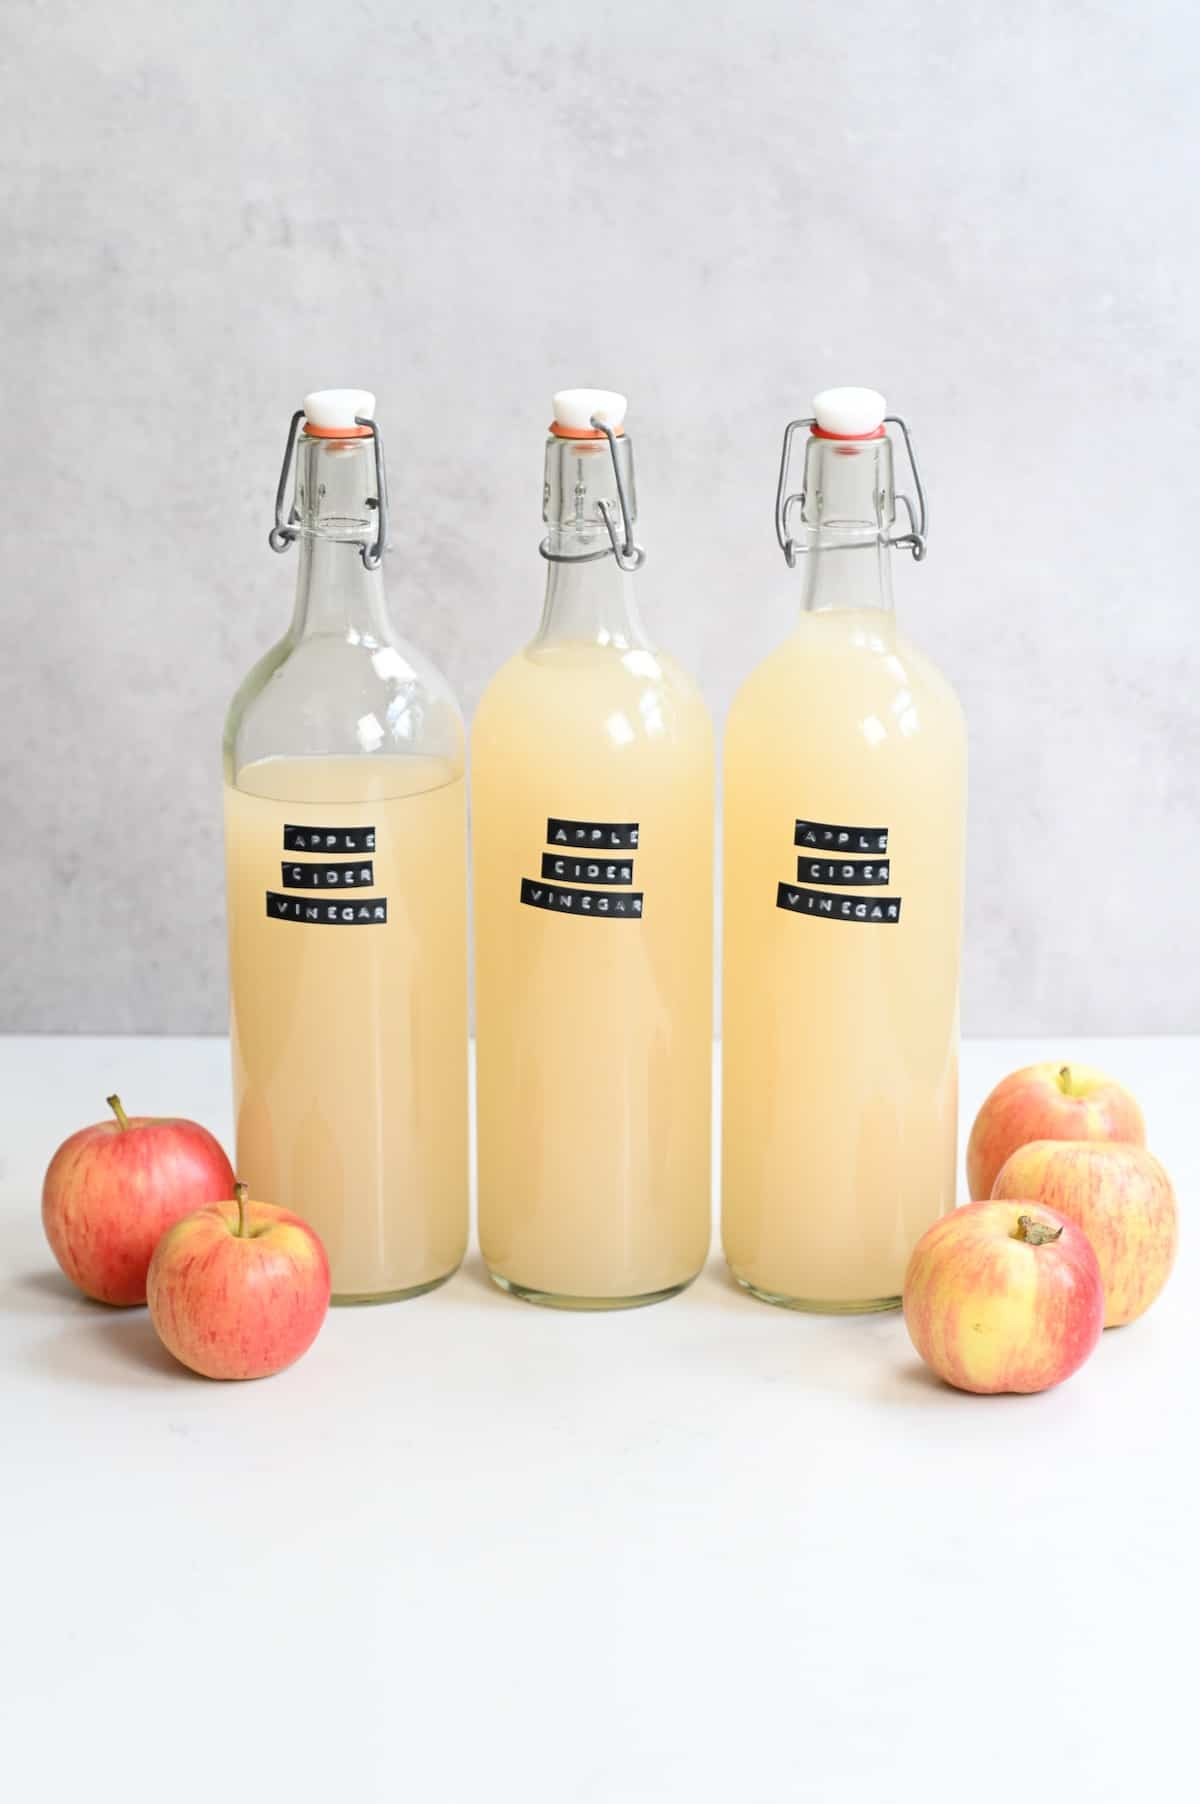 Three bottles of apple cider vinegar and a few apples next to them